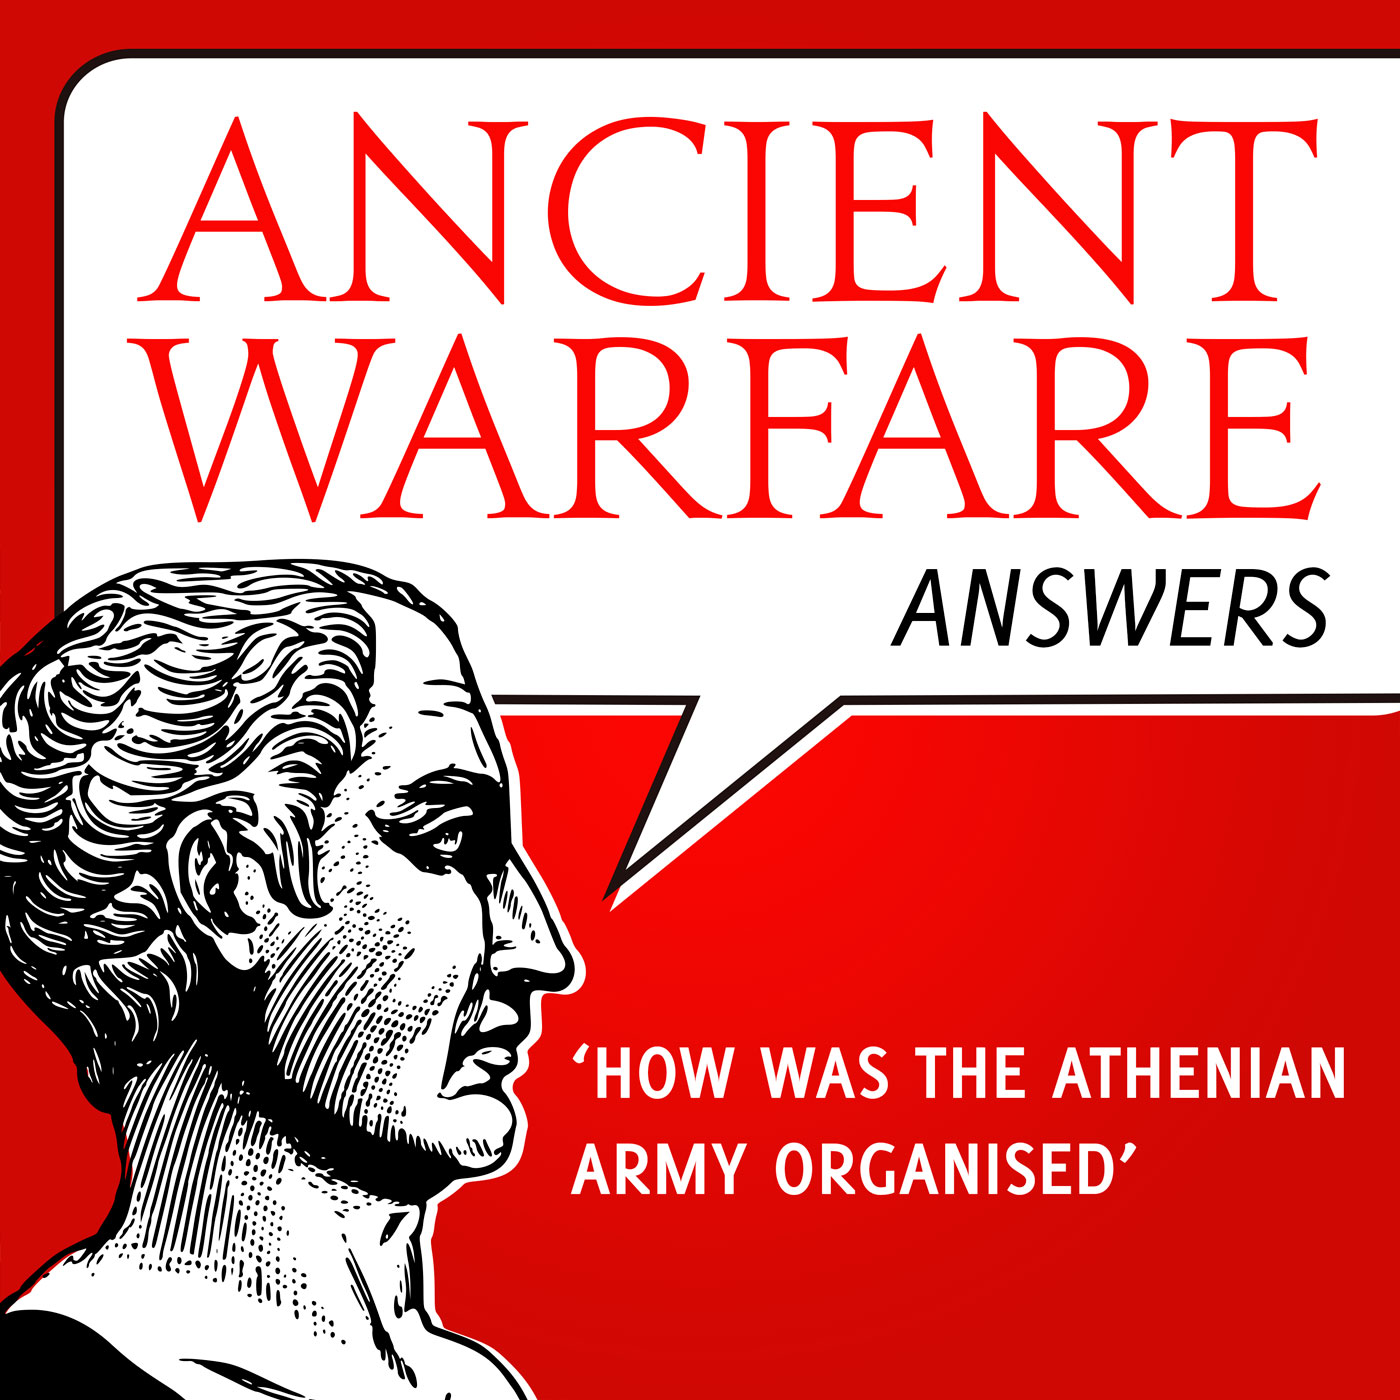 AWA - How was the ancient Athenian army organised?